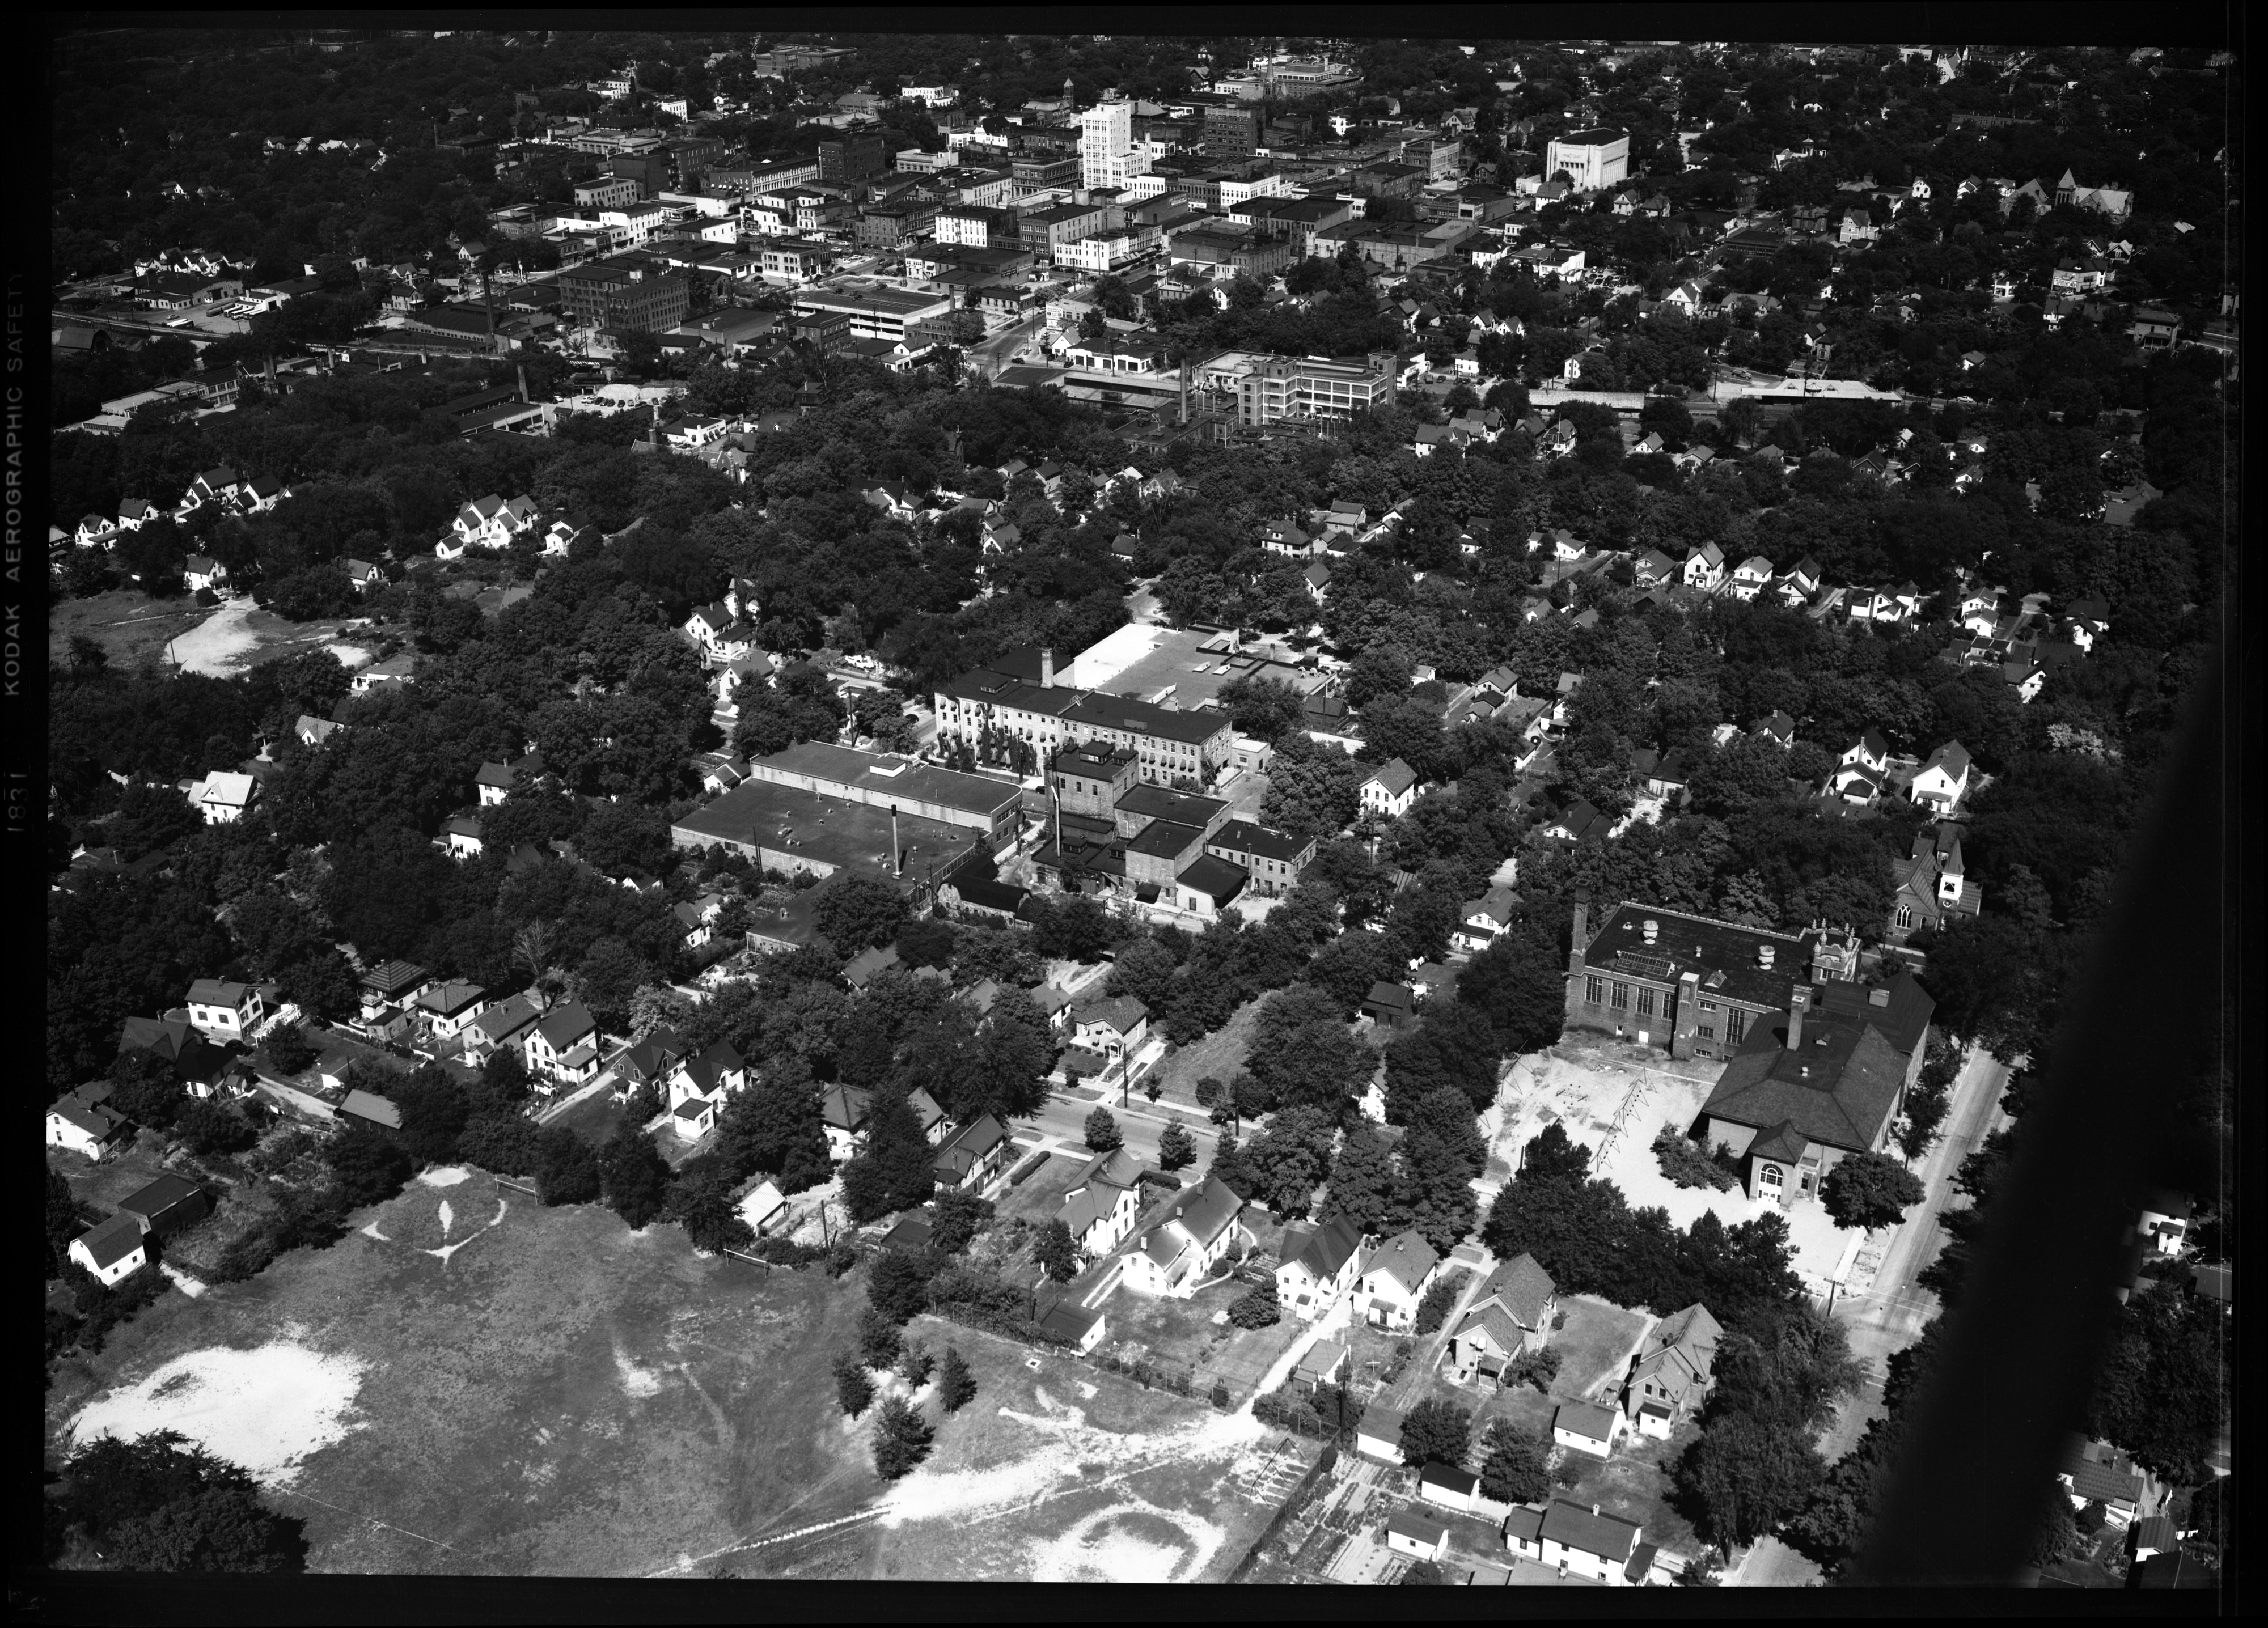 Aerial View of Ann Arbor Argus Plant, August 1950 image